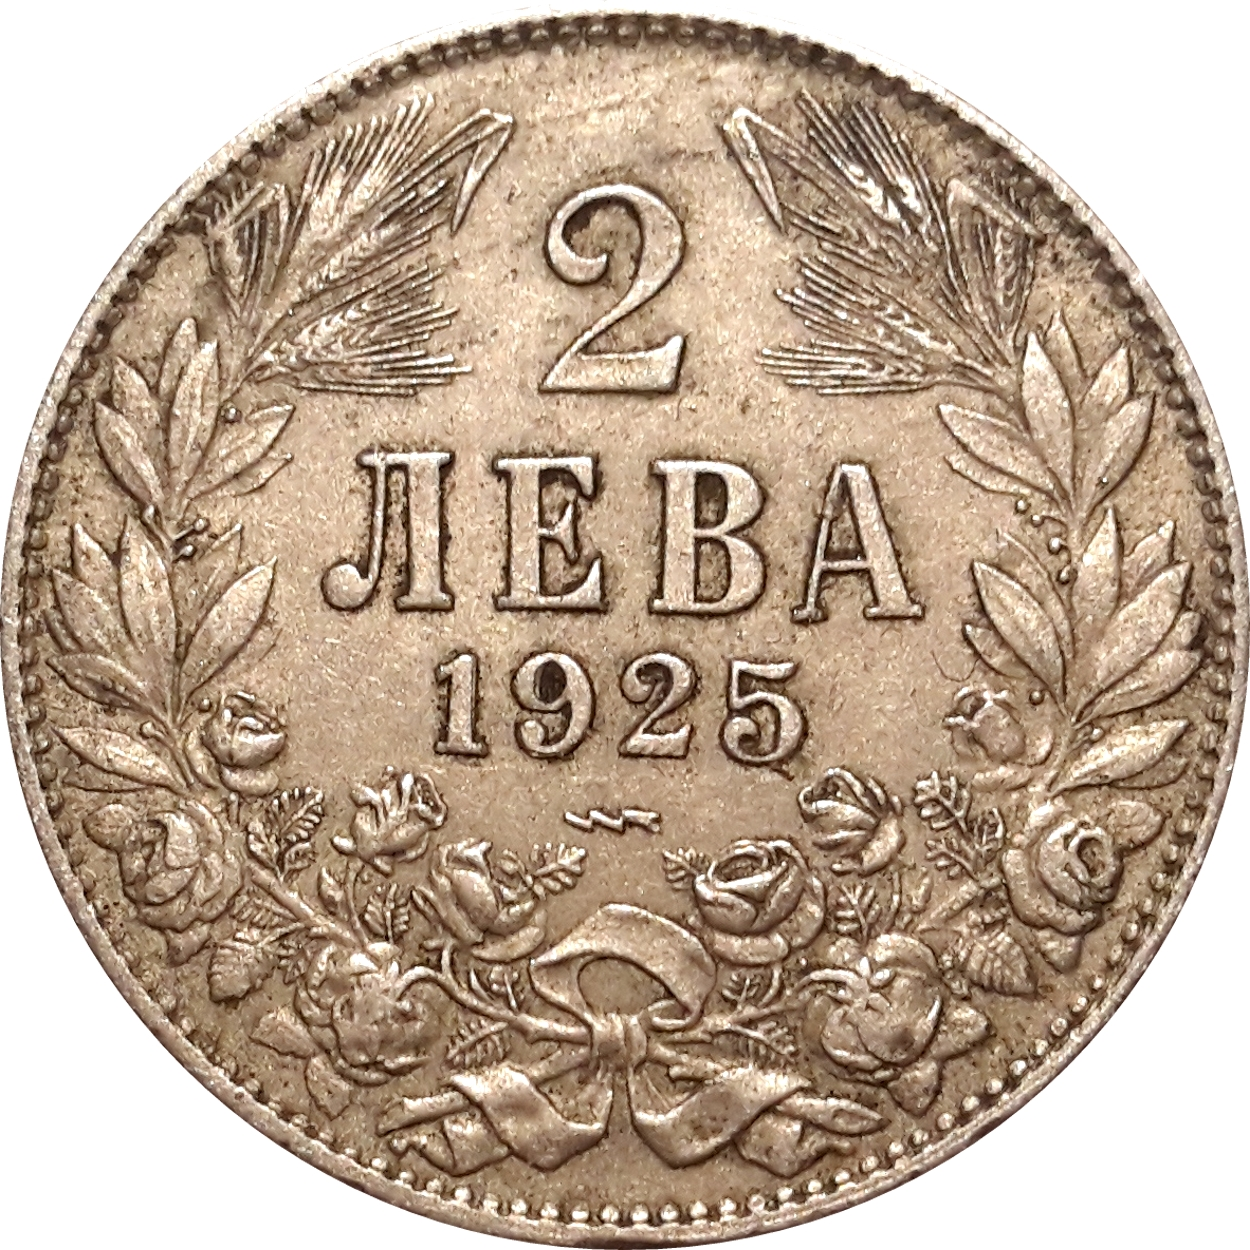 Two Leva (First Lev): Photo 2 Leva 1925